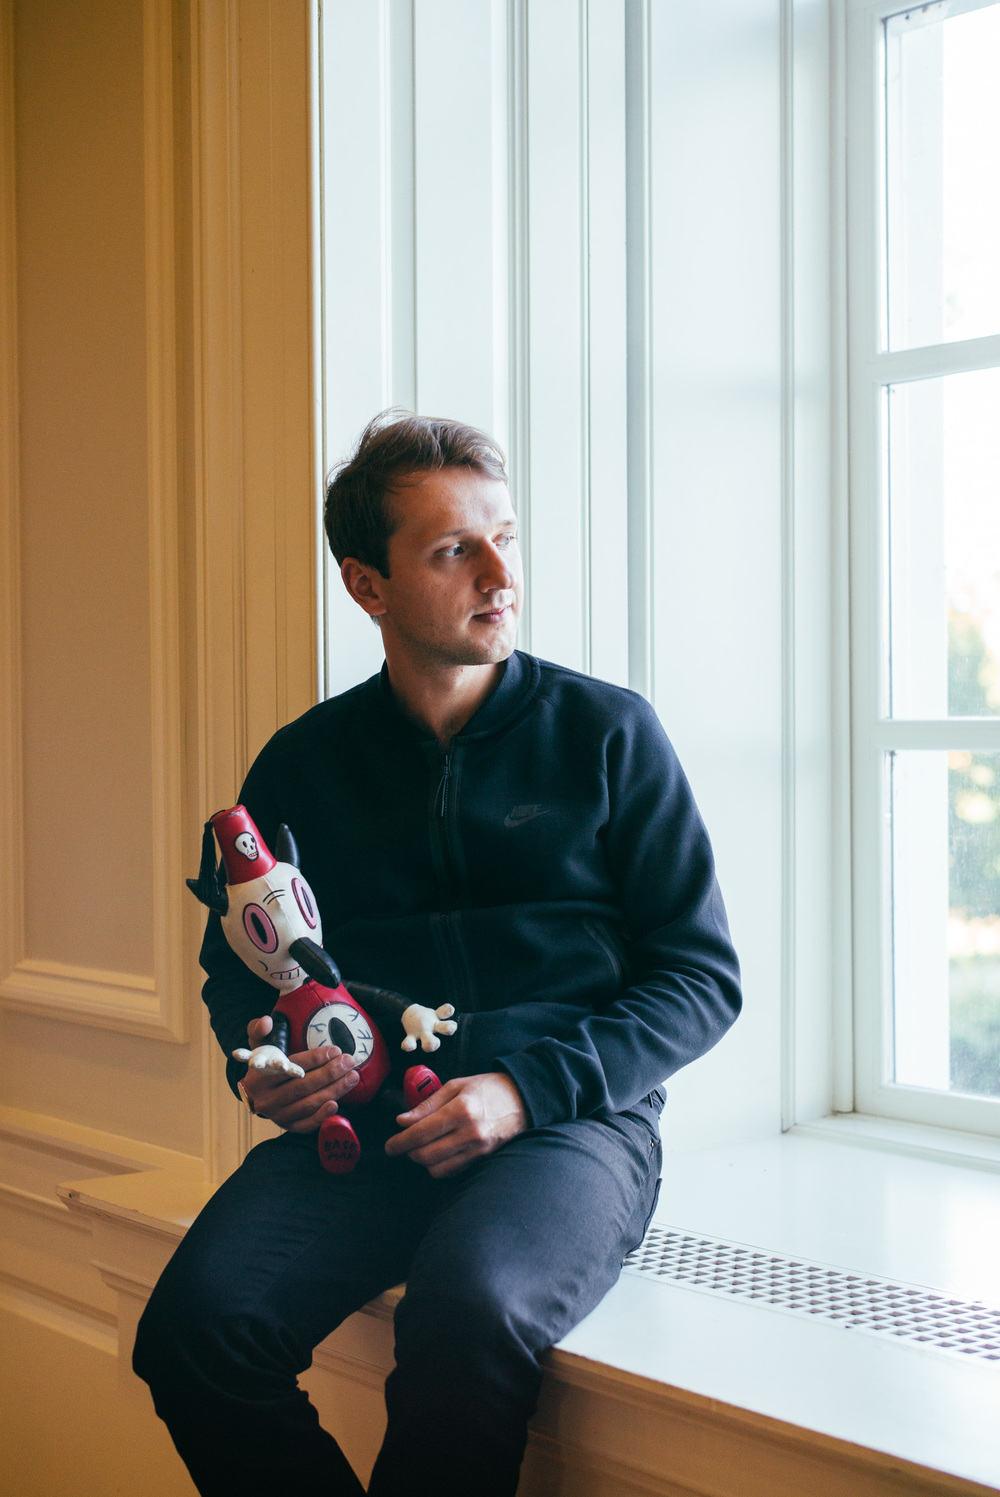 One of the speakers at FORM event was Gary Baseman, I managed to snug his Toby for a portrait.